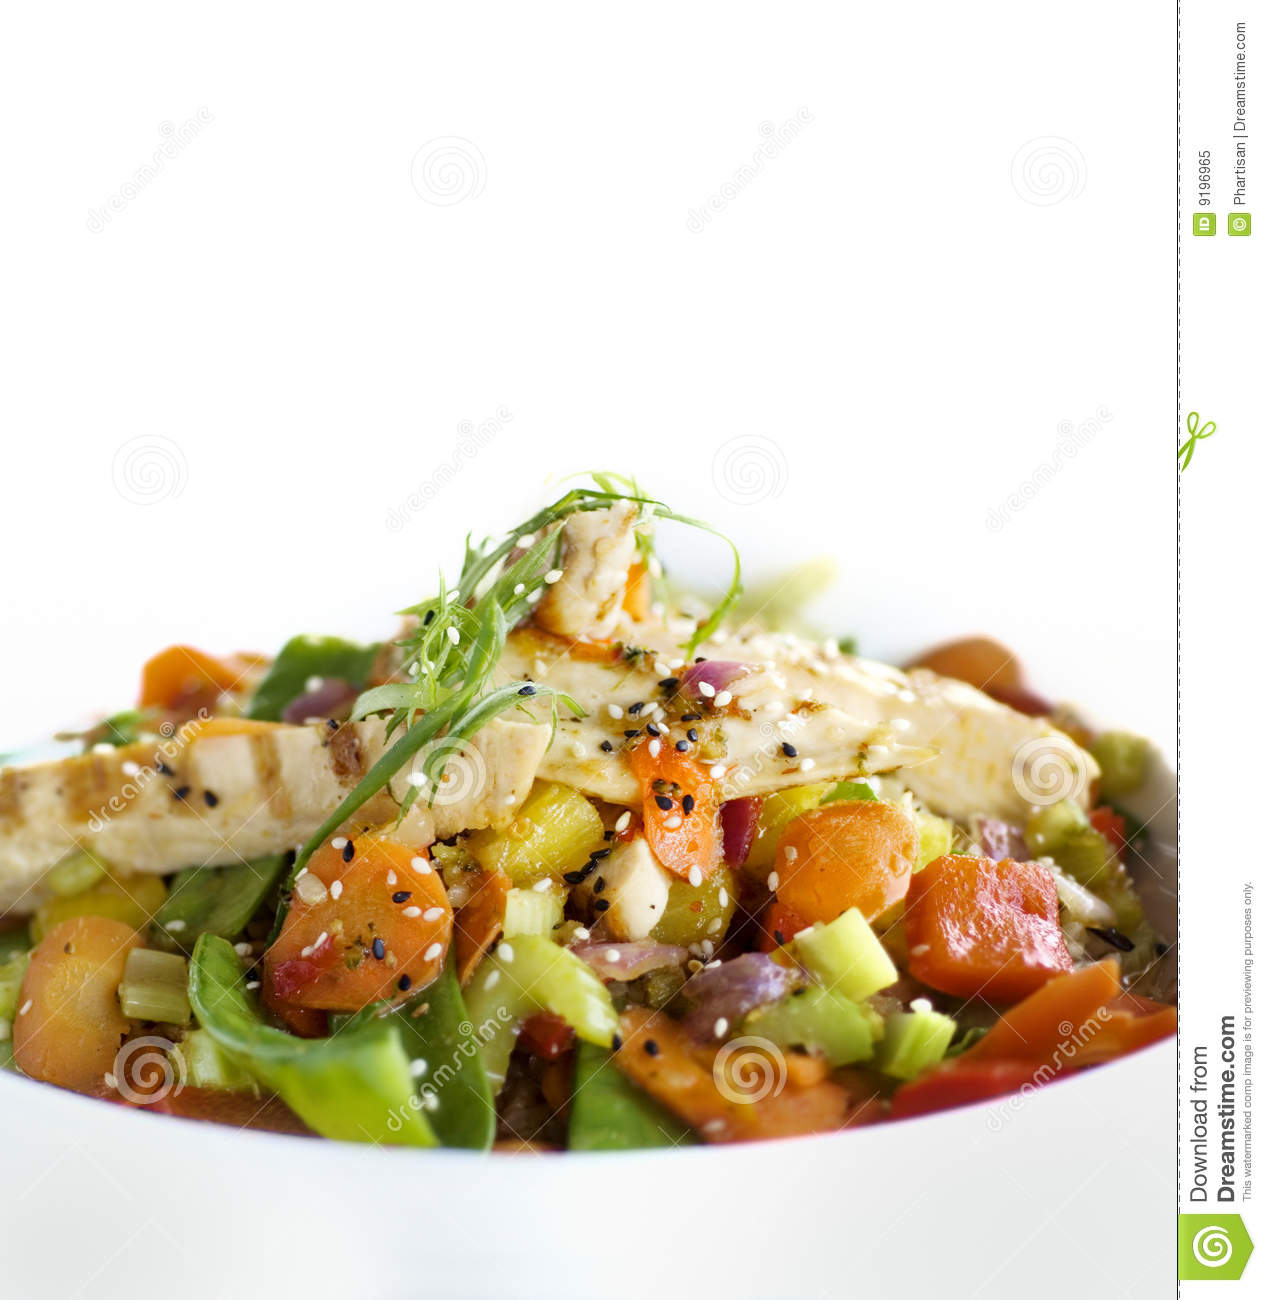 Healthy asian food stock image image of gourmet food for Asia asian cuisine